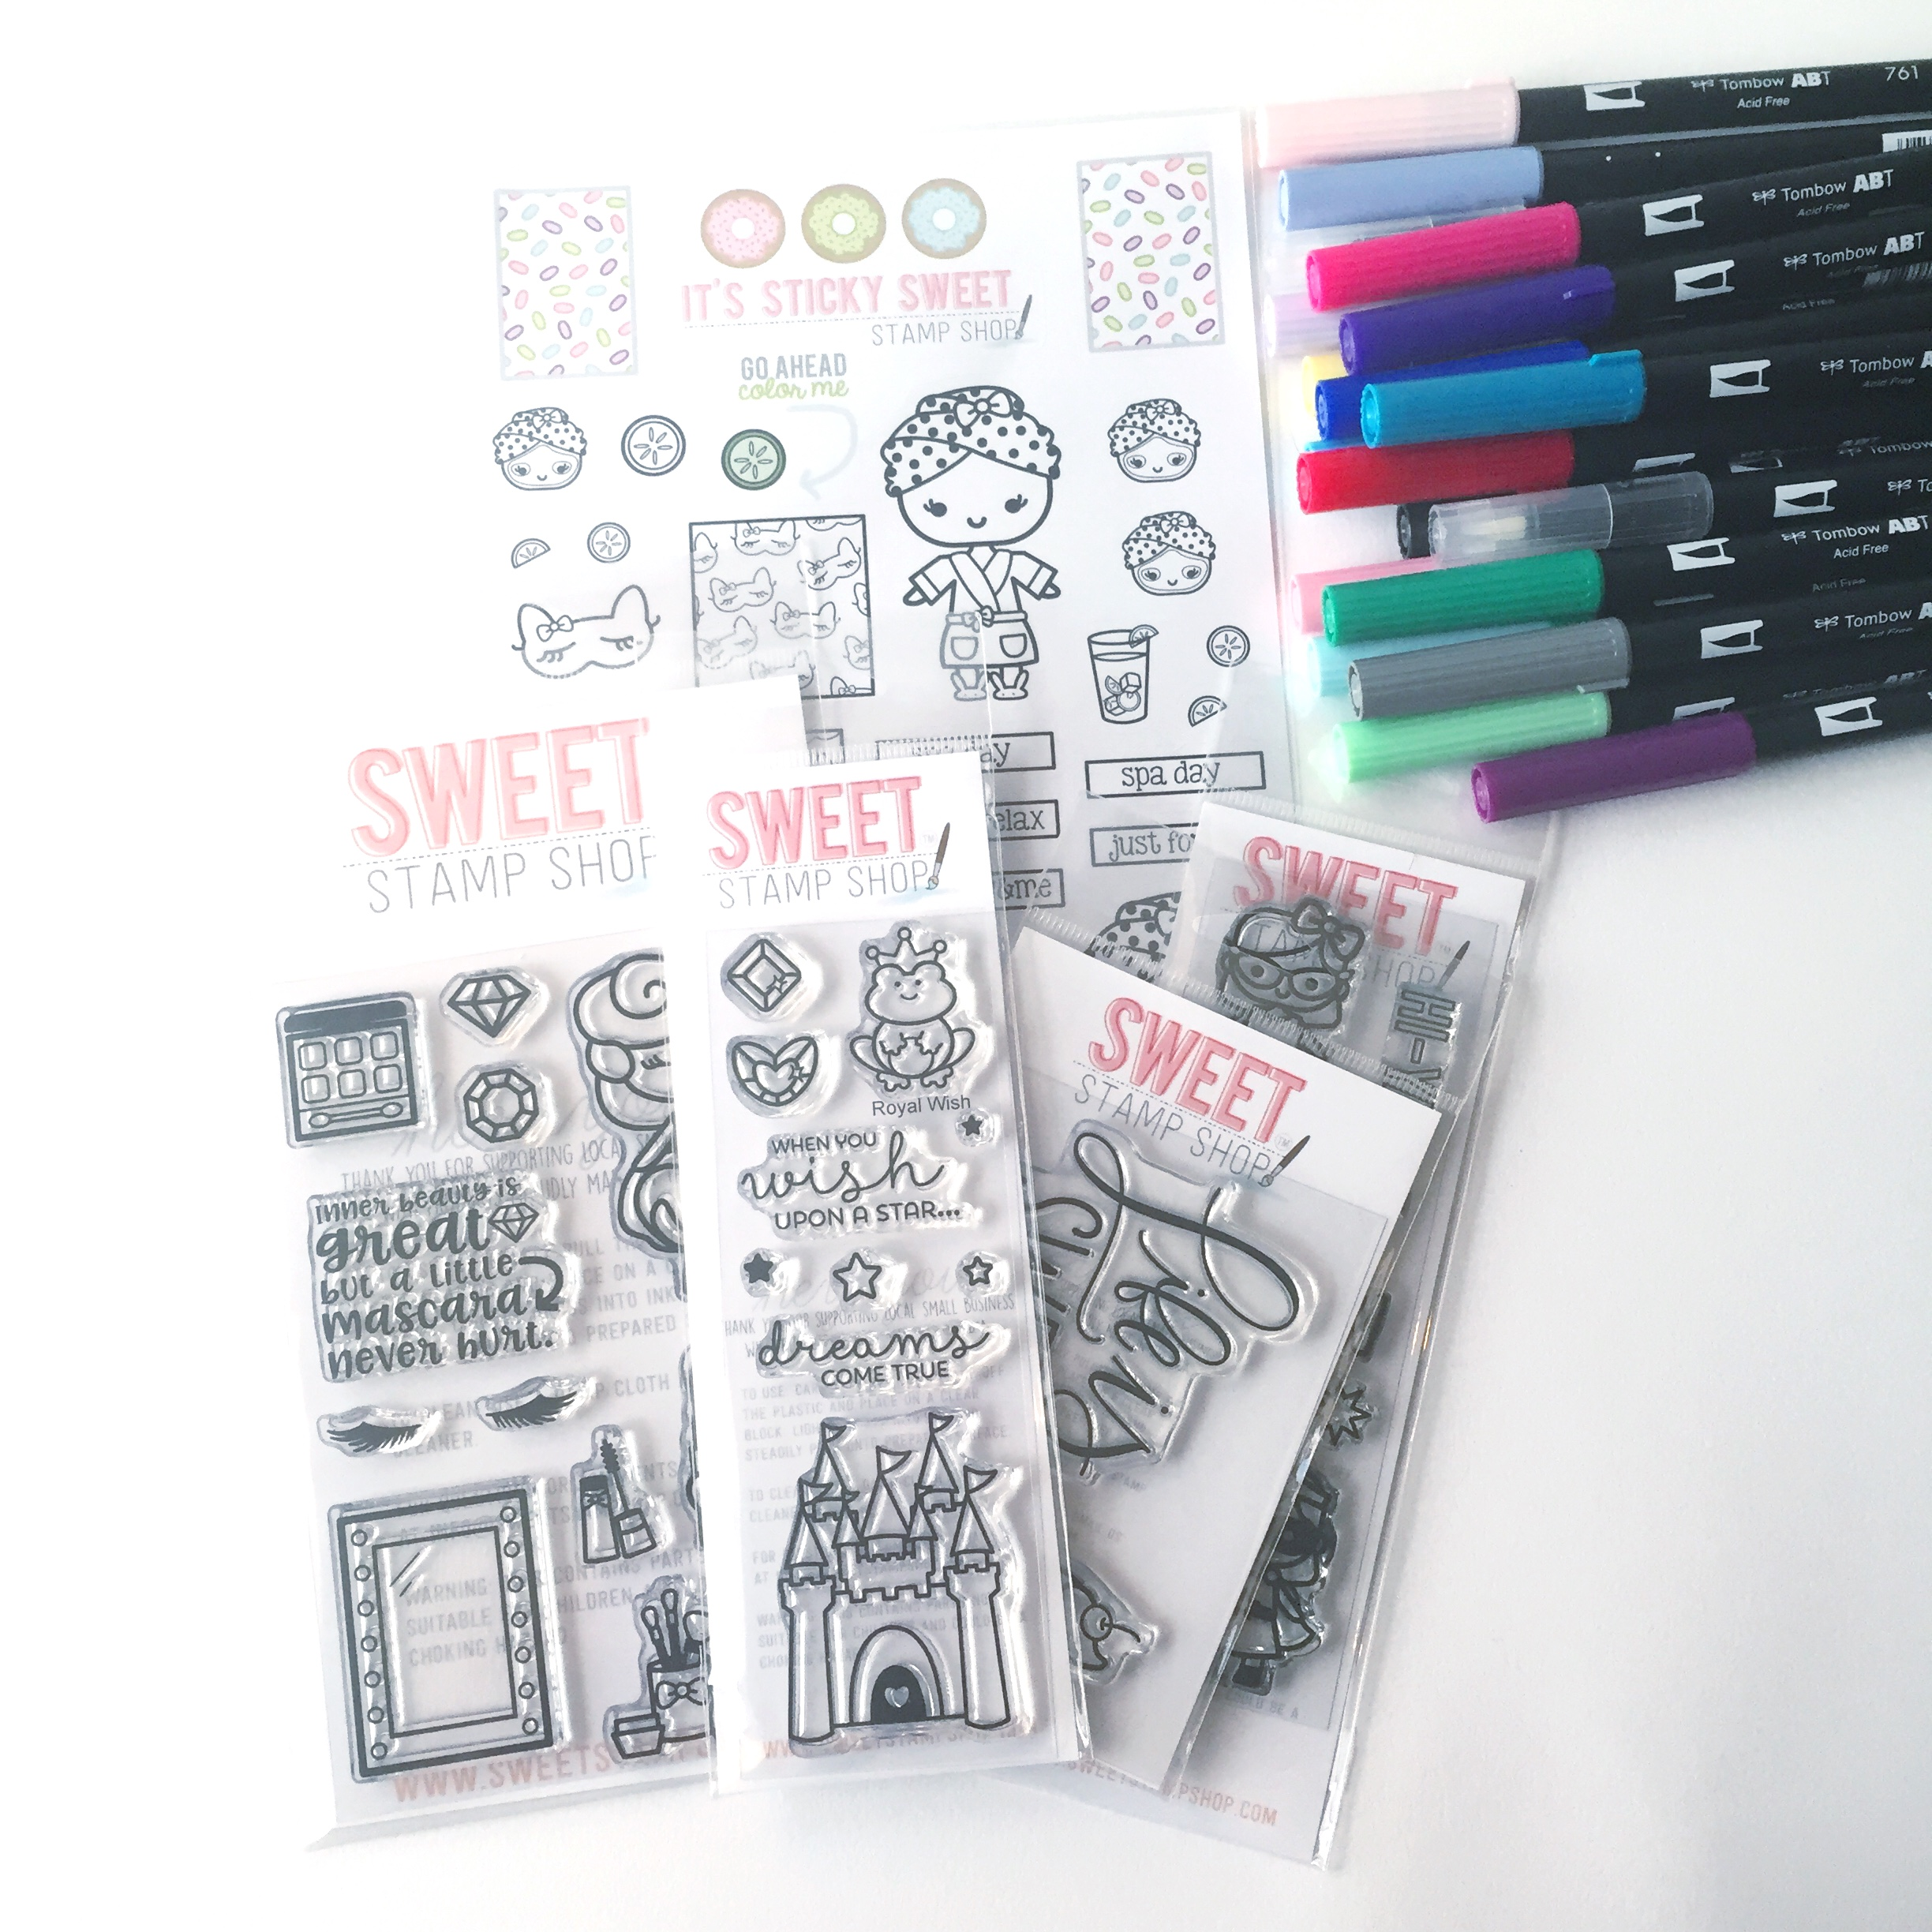 Lauren Fitzmaurice of @renmadecalligraphy and Renmadecalligraphy.com shares how to use Tombow USA products paired with products from Sweet Stamp Shop to create easy planner stickers. For more information about the products used check out TombowUSA.com and Sweetstampshop.com.